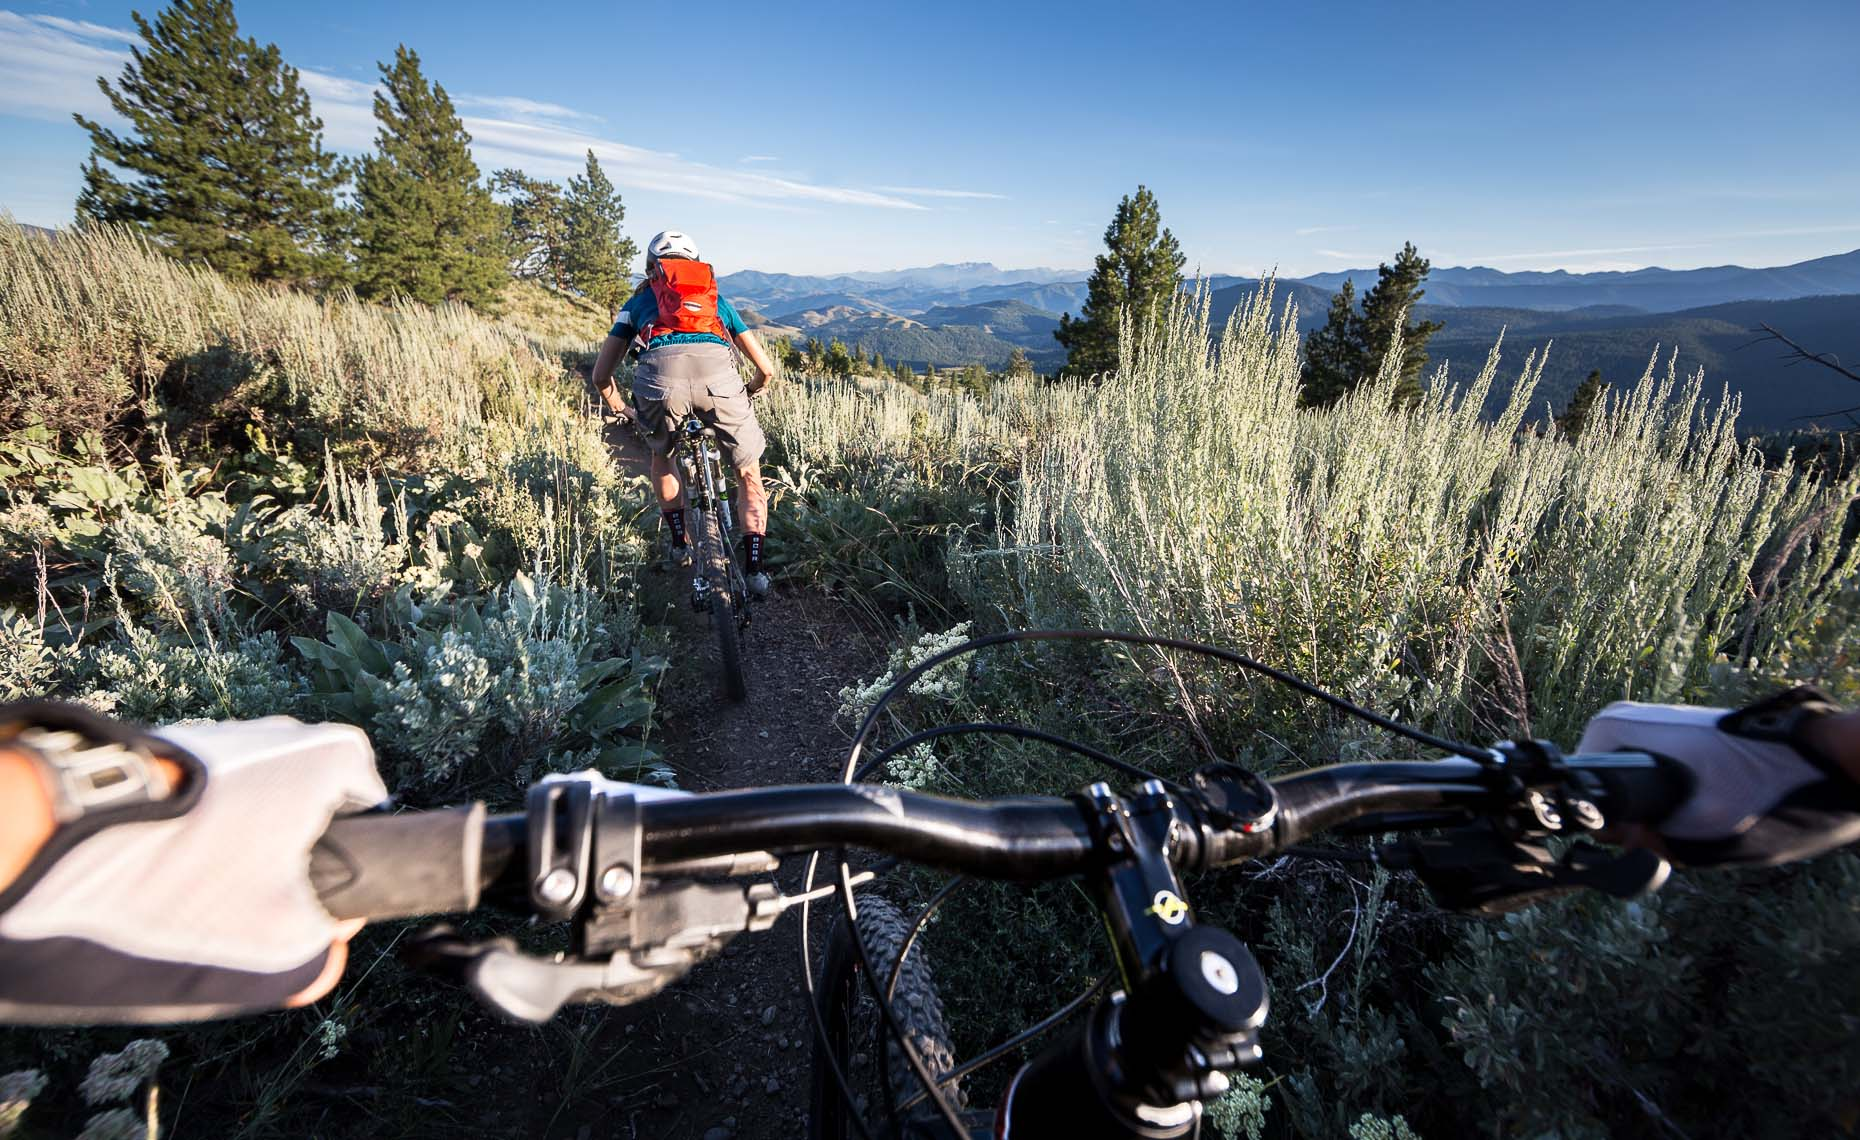 Point of view handlebars mountain bike riders